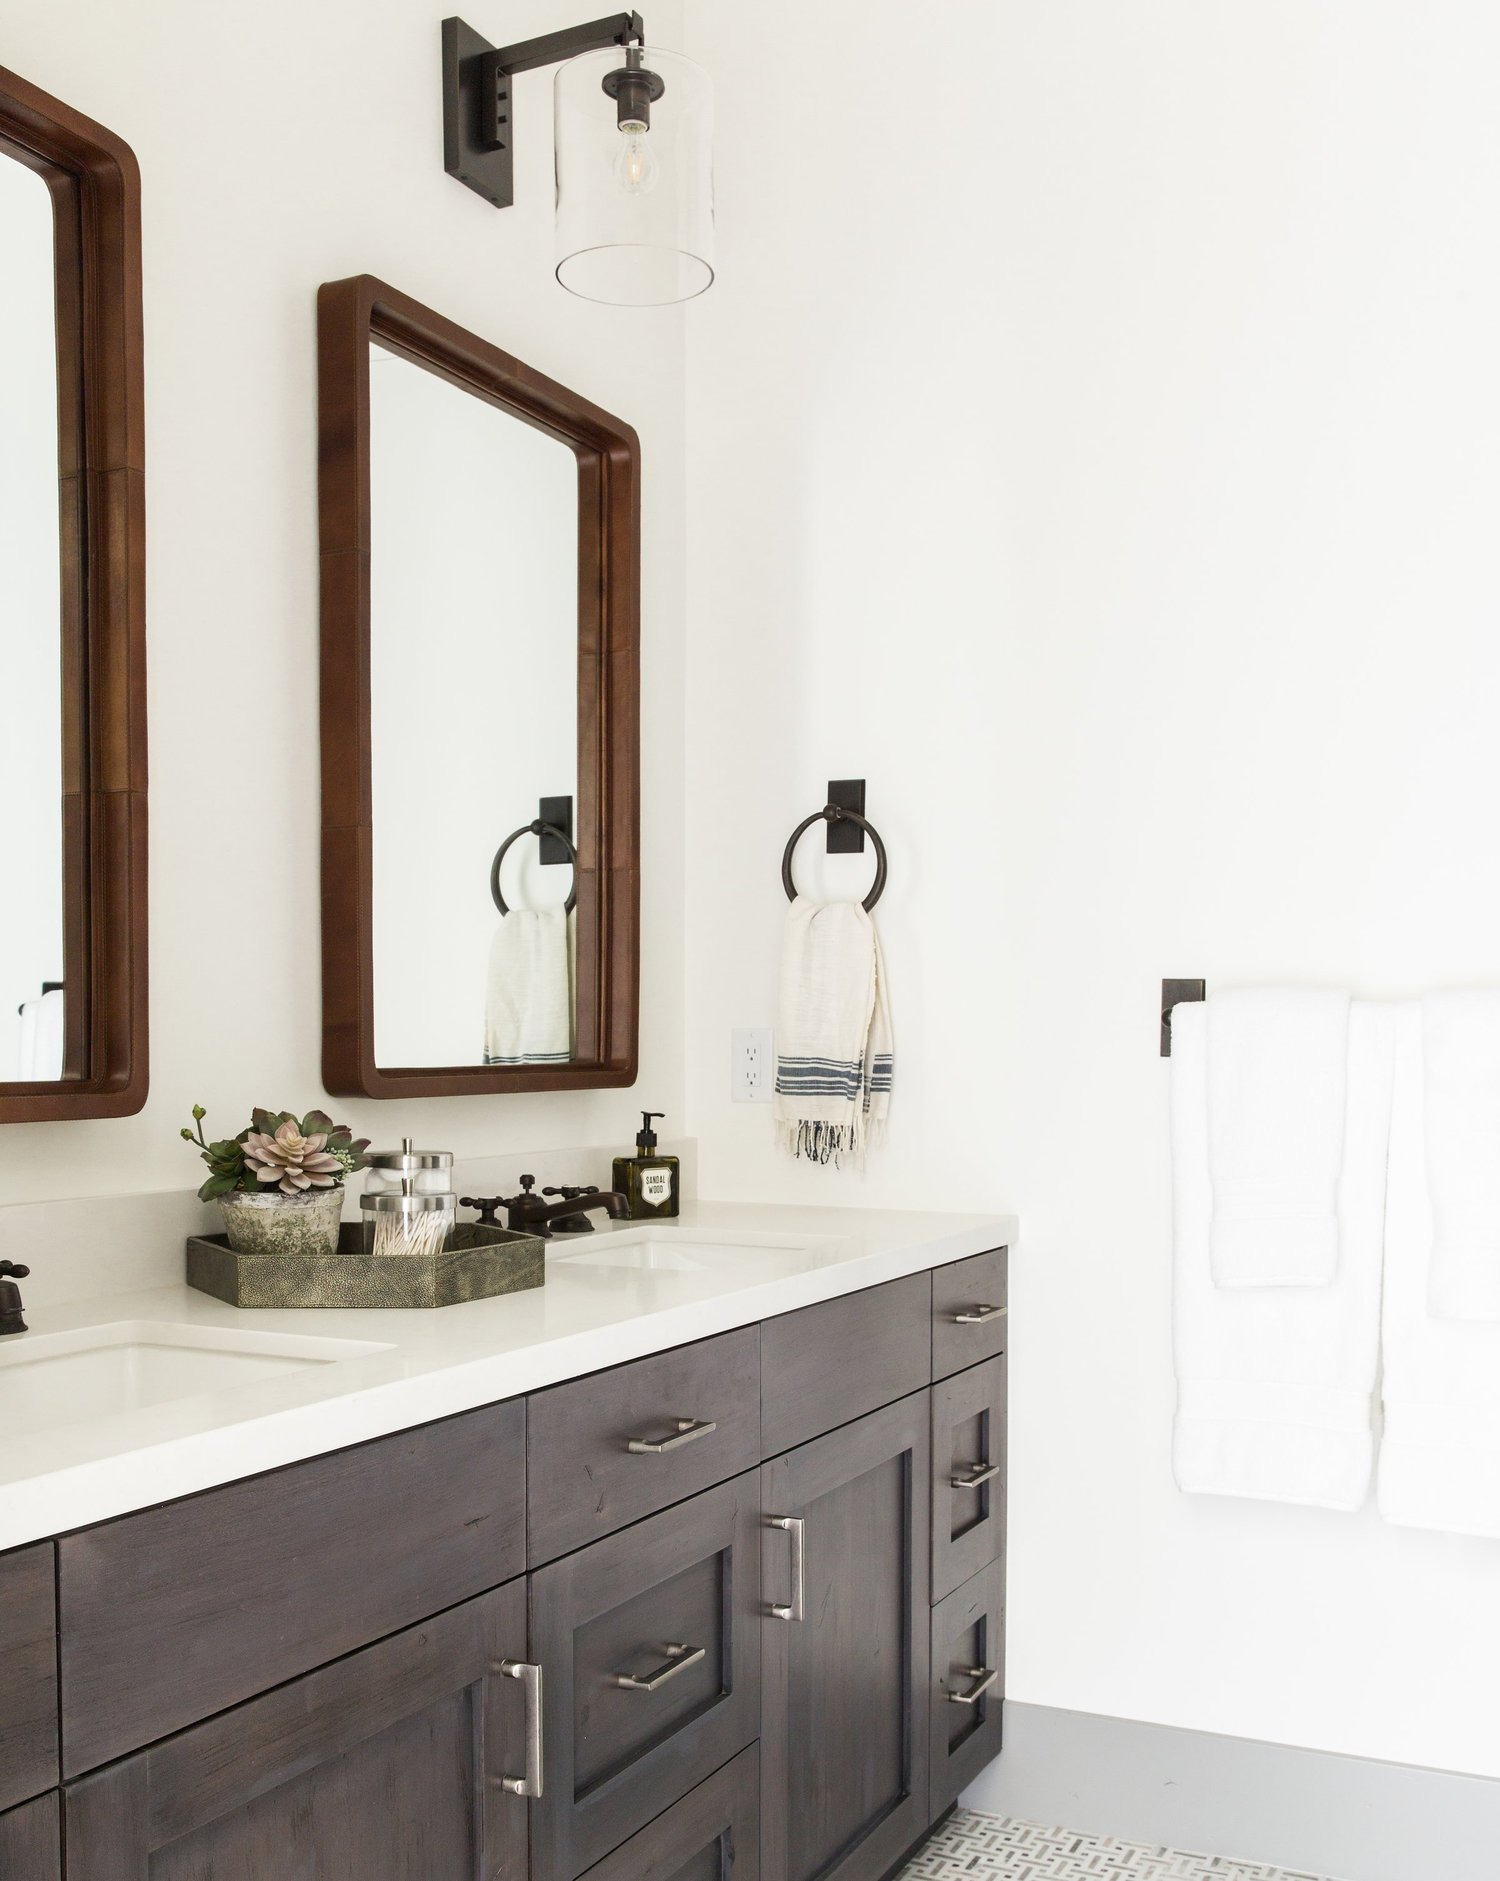 Decorative Mirrors for Bathrooms New Our Favorite Decorative Bathroom Mirrors